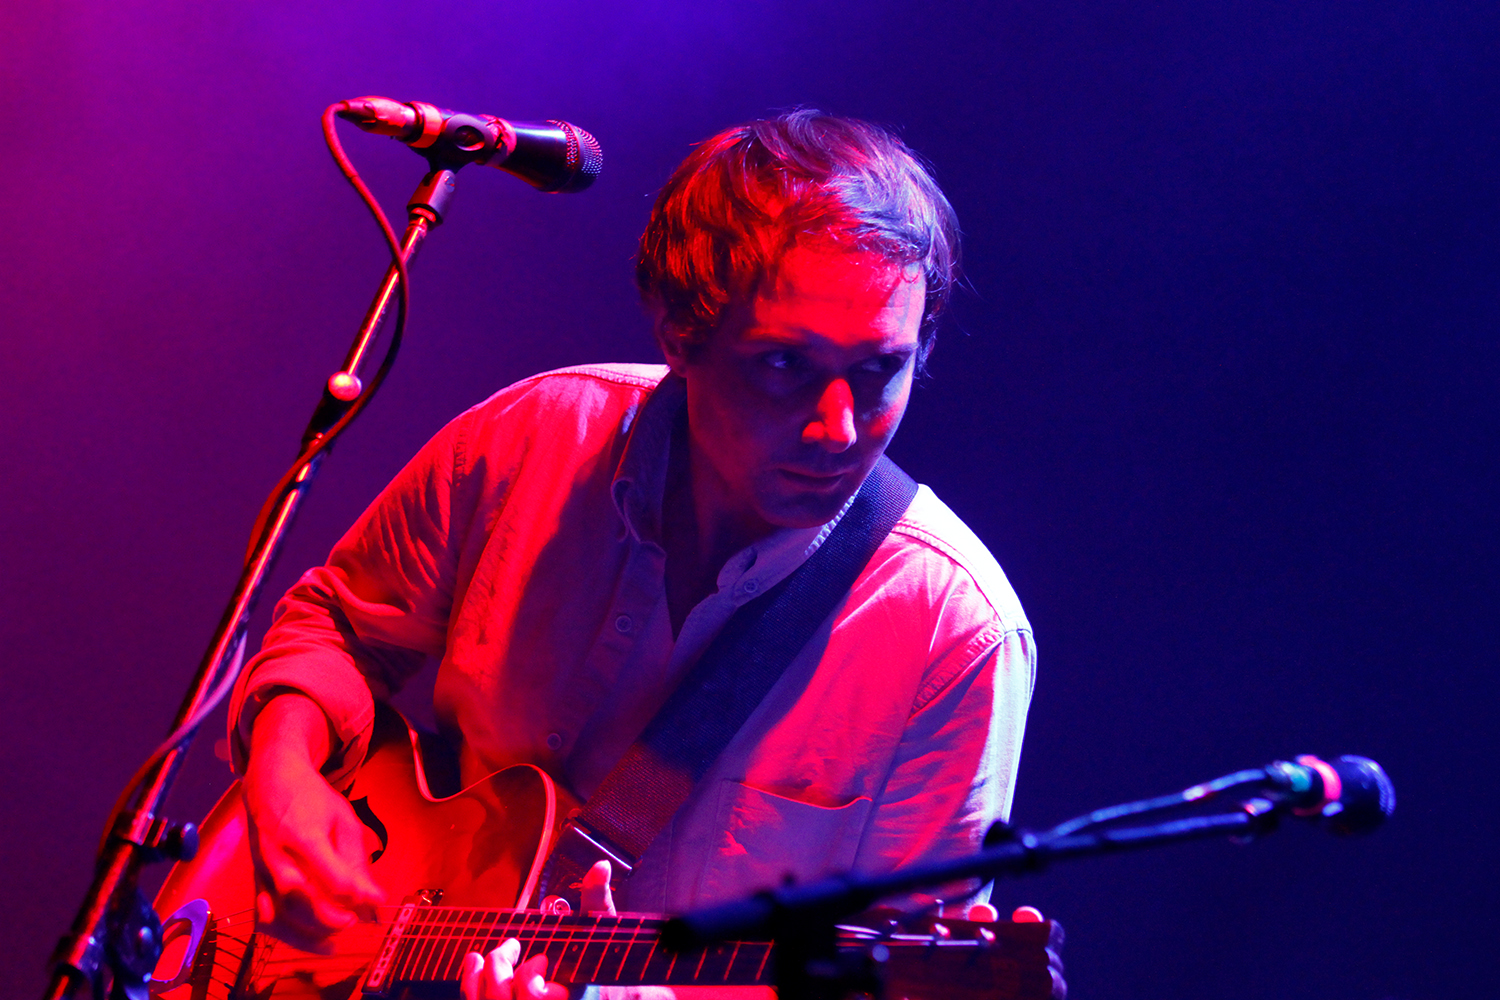 Grizzly Bear guitarist Daniel Rosen is also known as one-half of the duo Department Of Eagles, and released his own solo EP in 2012 called Silent Hour/Golden Mile.